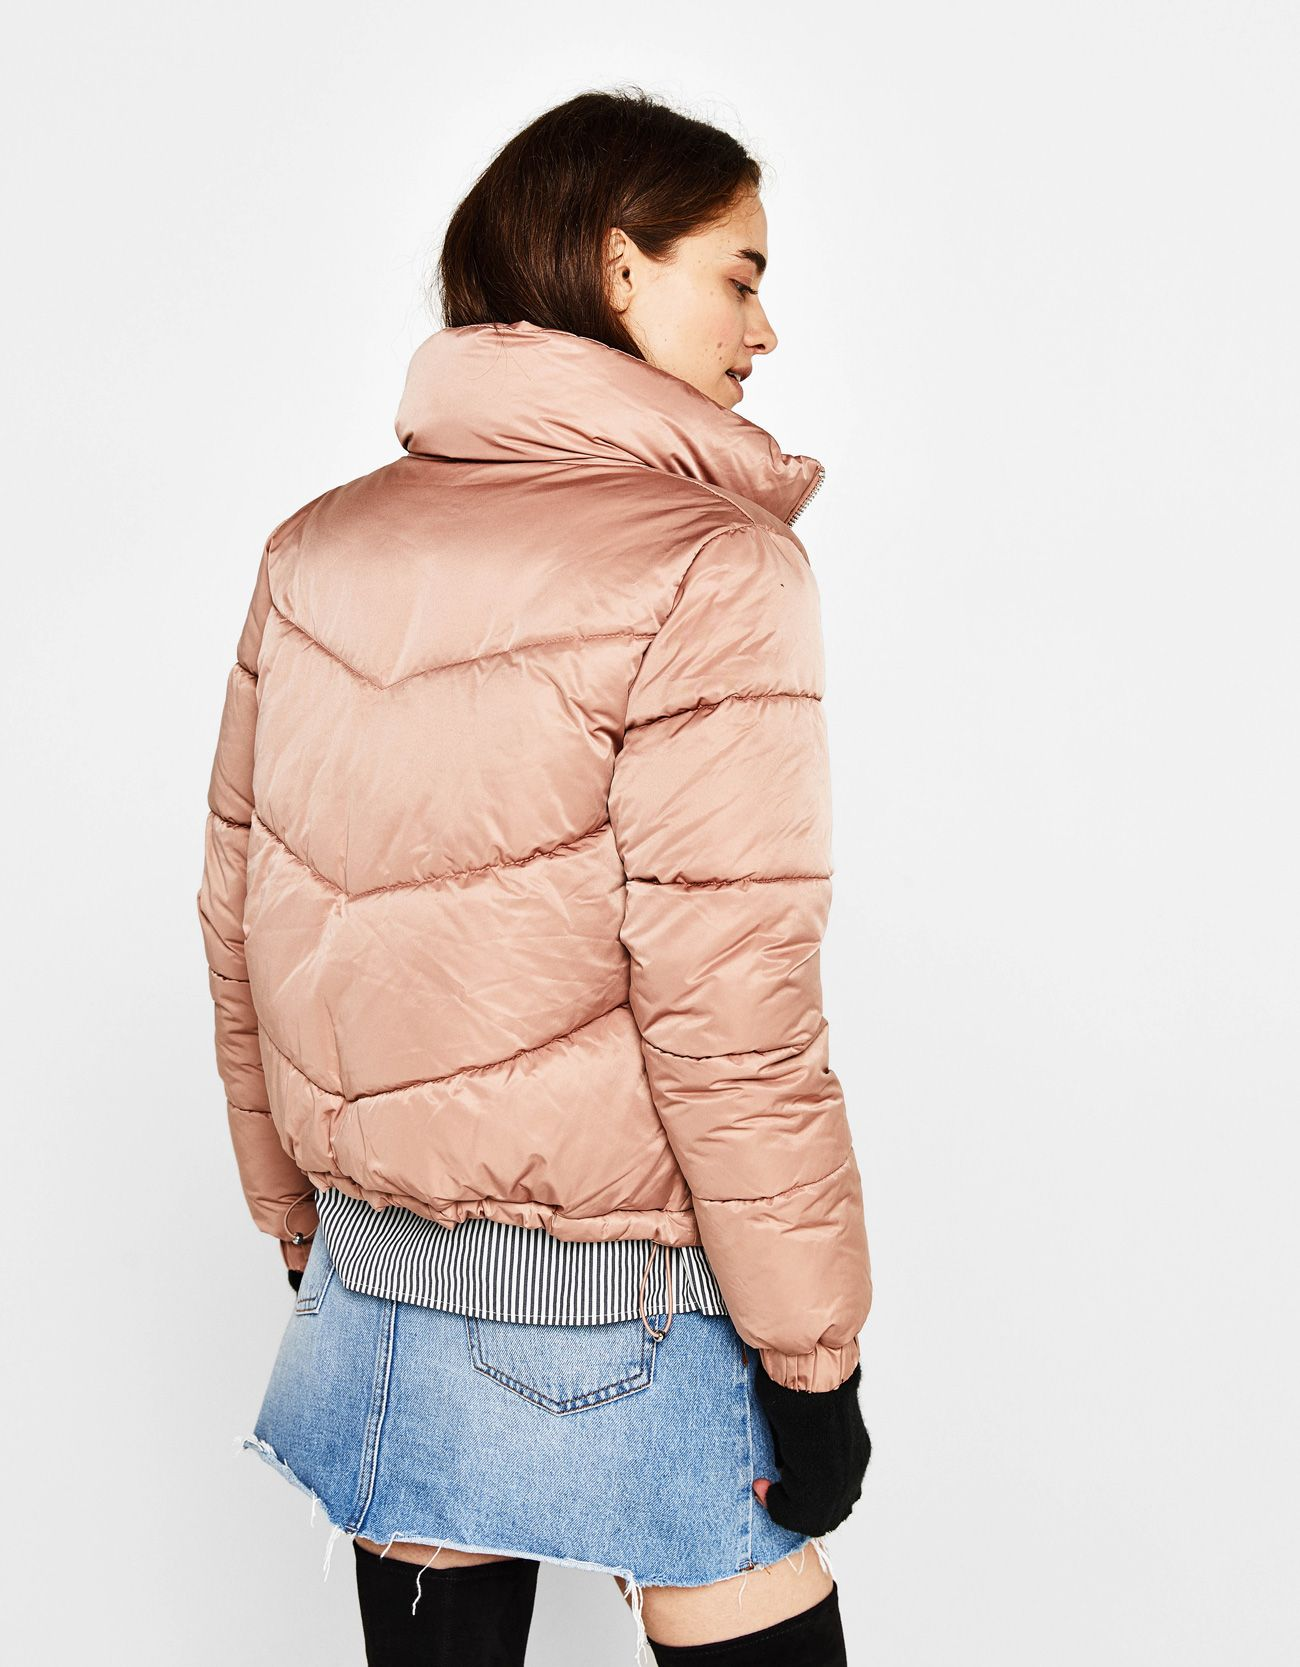 Puffer Jacket With Gathered Hem Discover This And Many More Items In Bershka With New Products Every Week Jackets Puffer Jackets Outerwear Women [ 1667 x 1300 Pixel ]